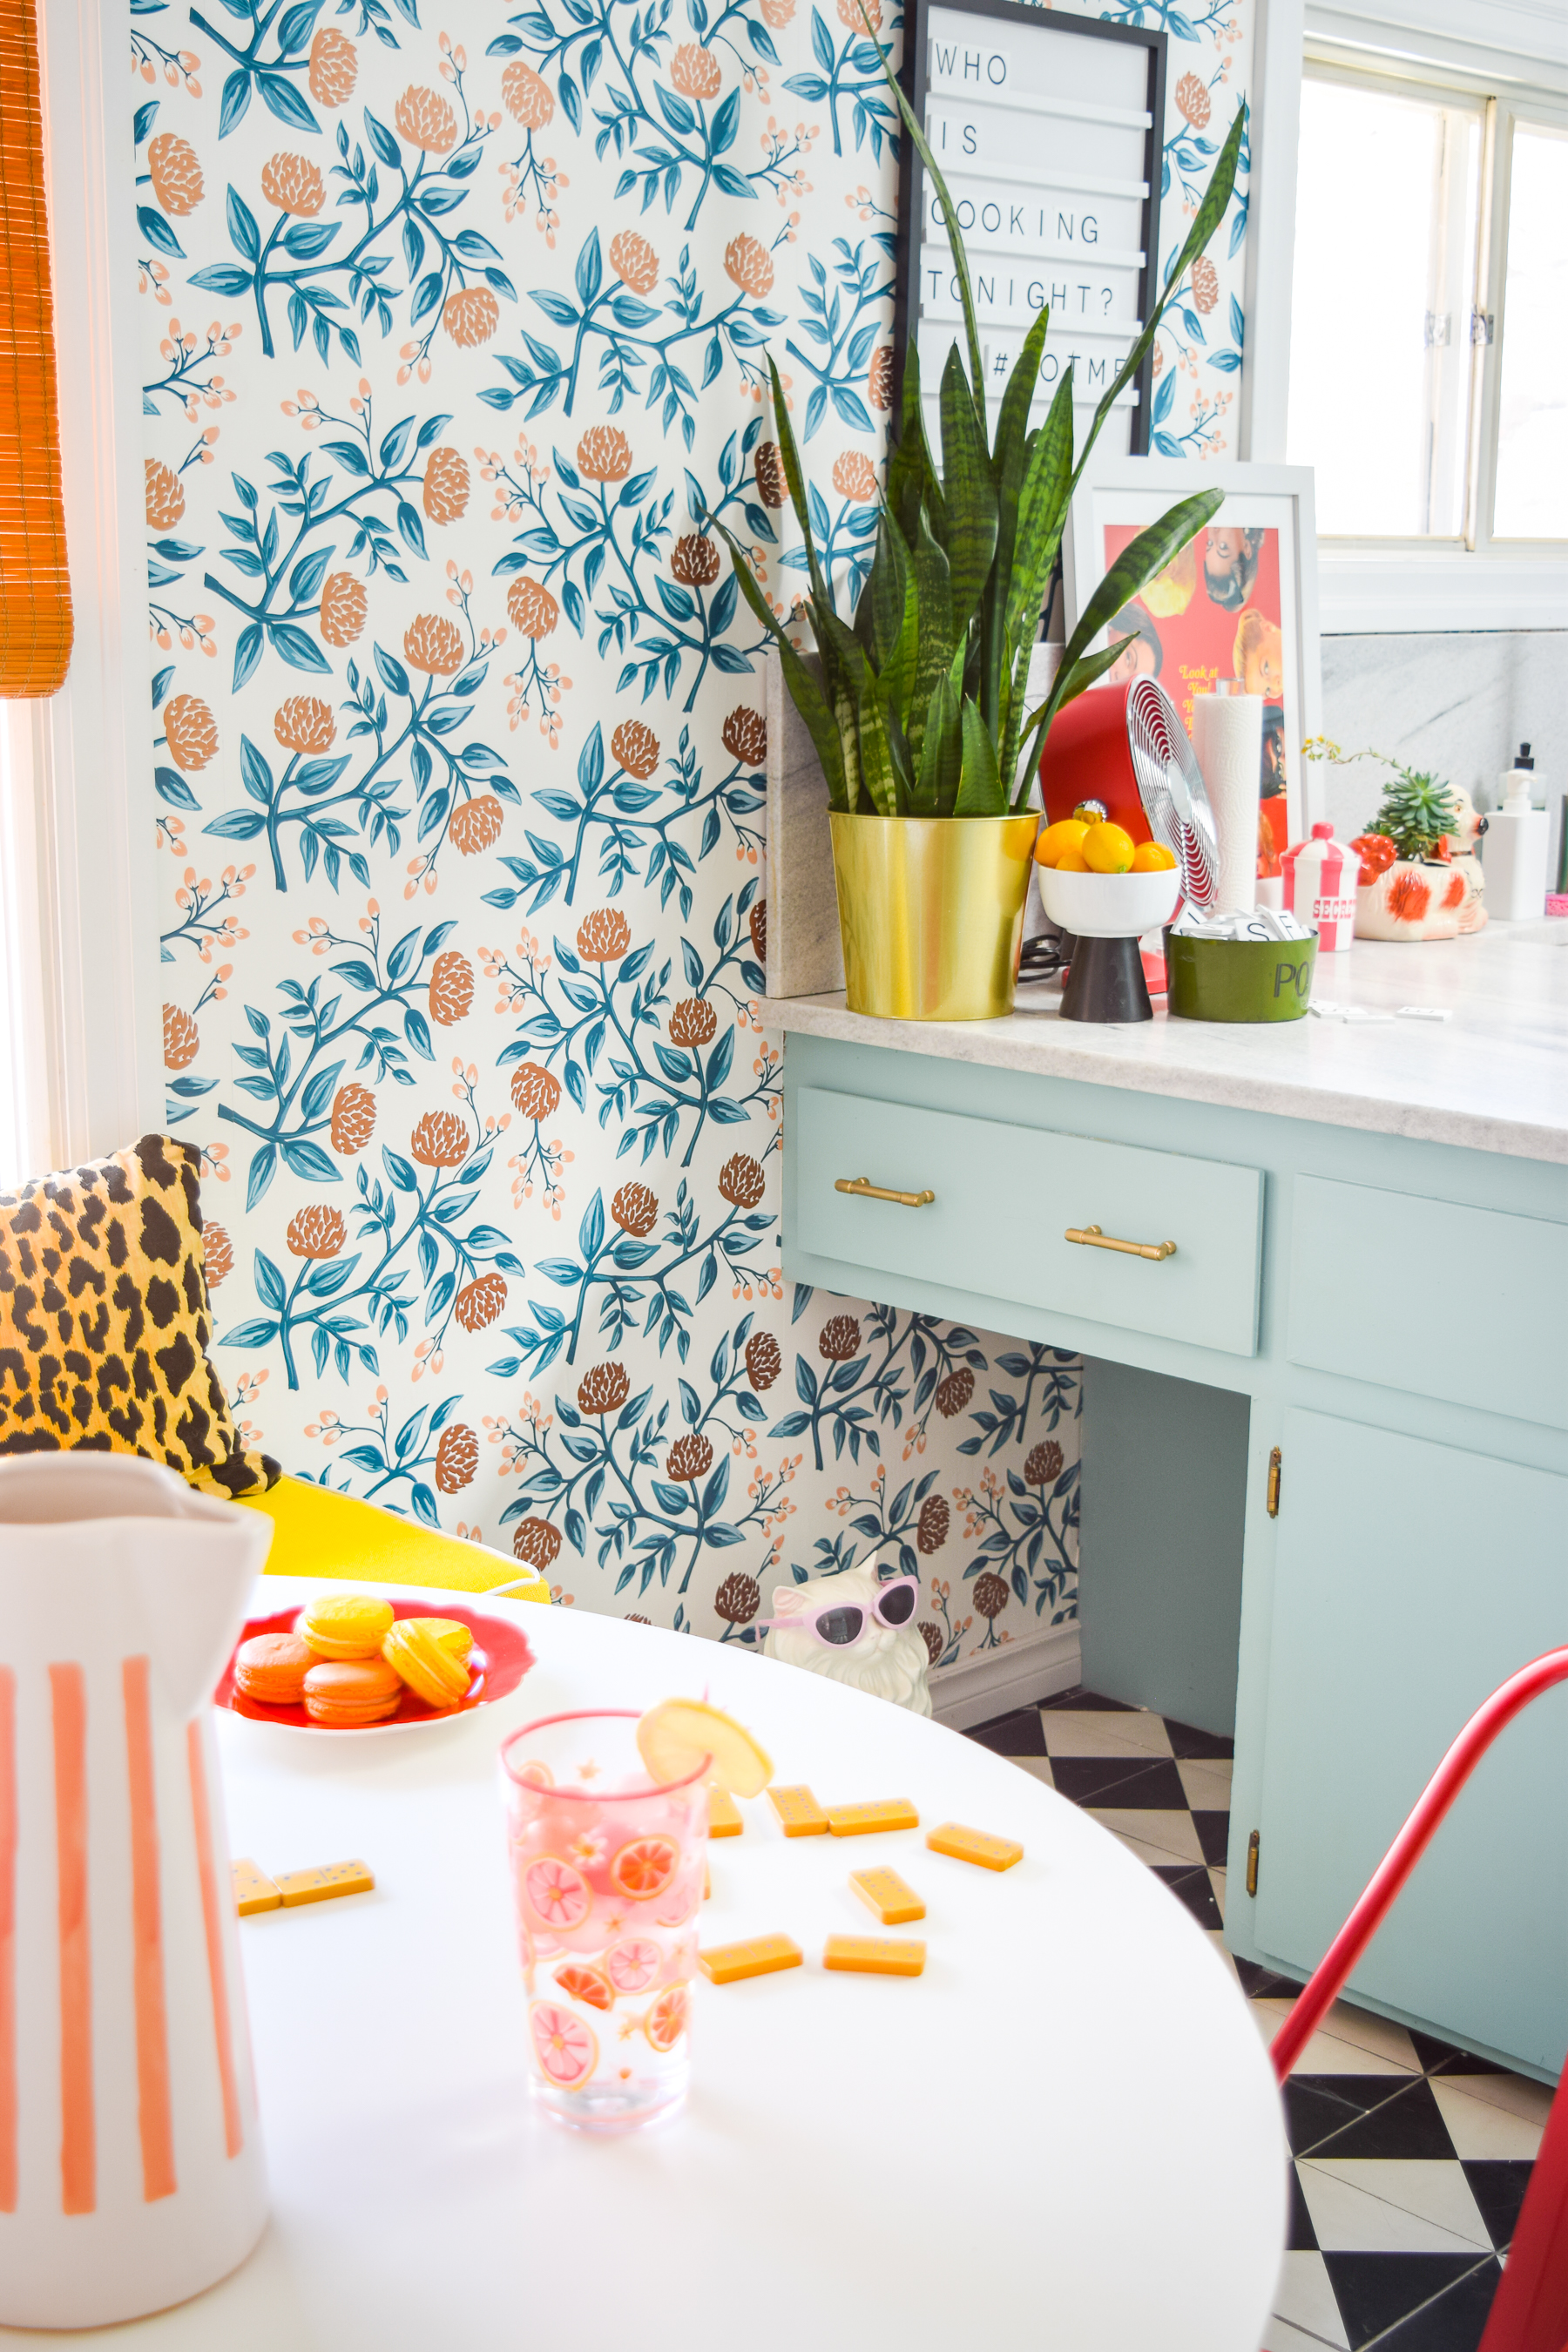 Our retro glam kitchen renovations are done! Come see how we transformed our dated kitchen, into a modern oasis, full of colour and pattern.